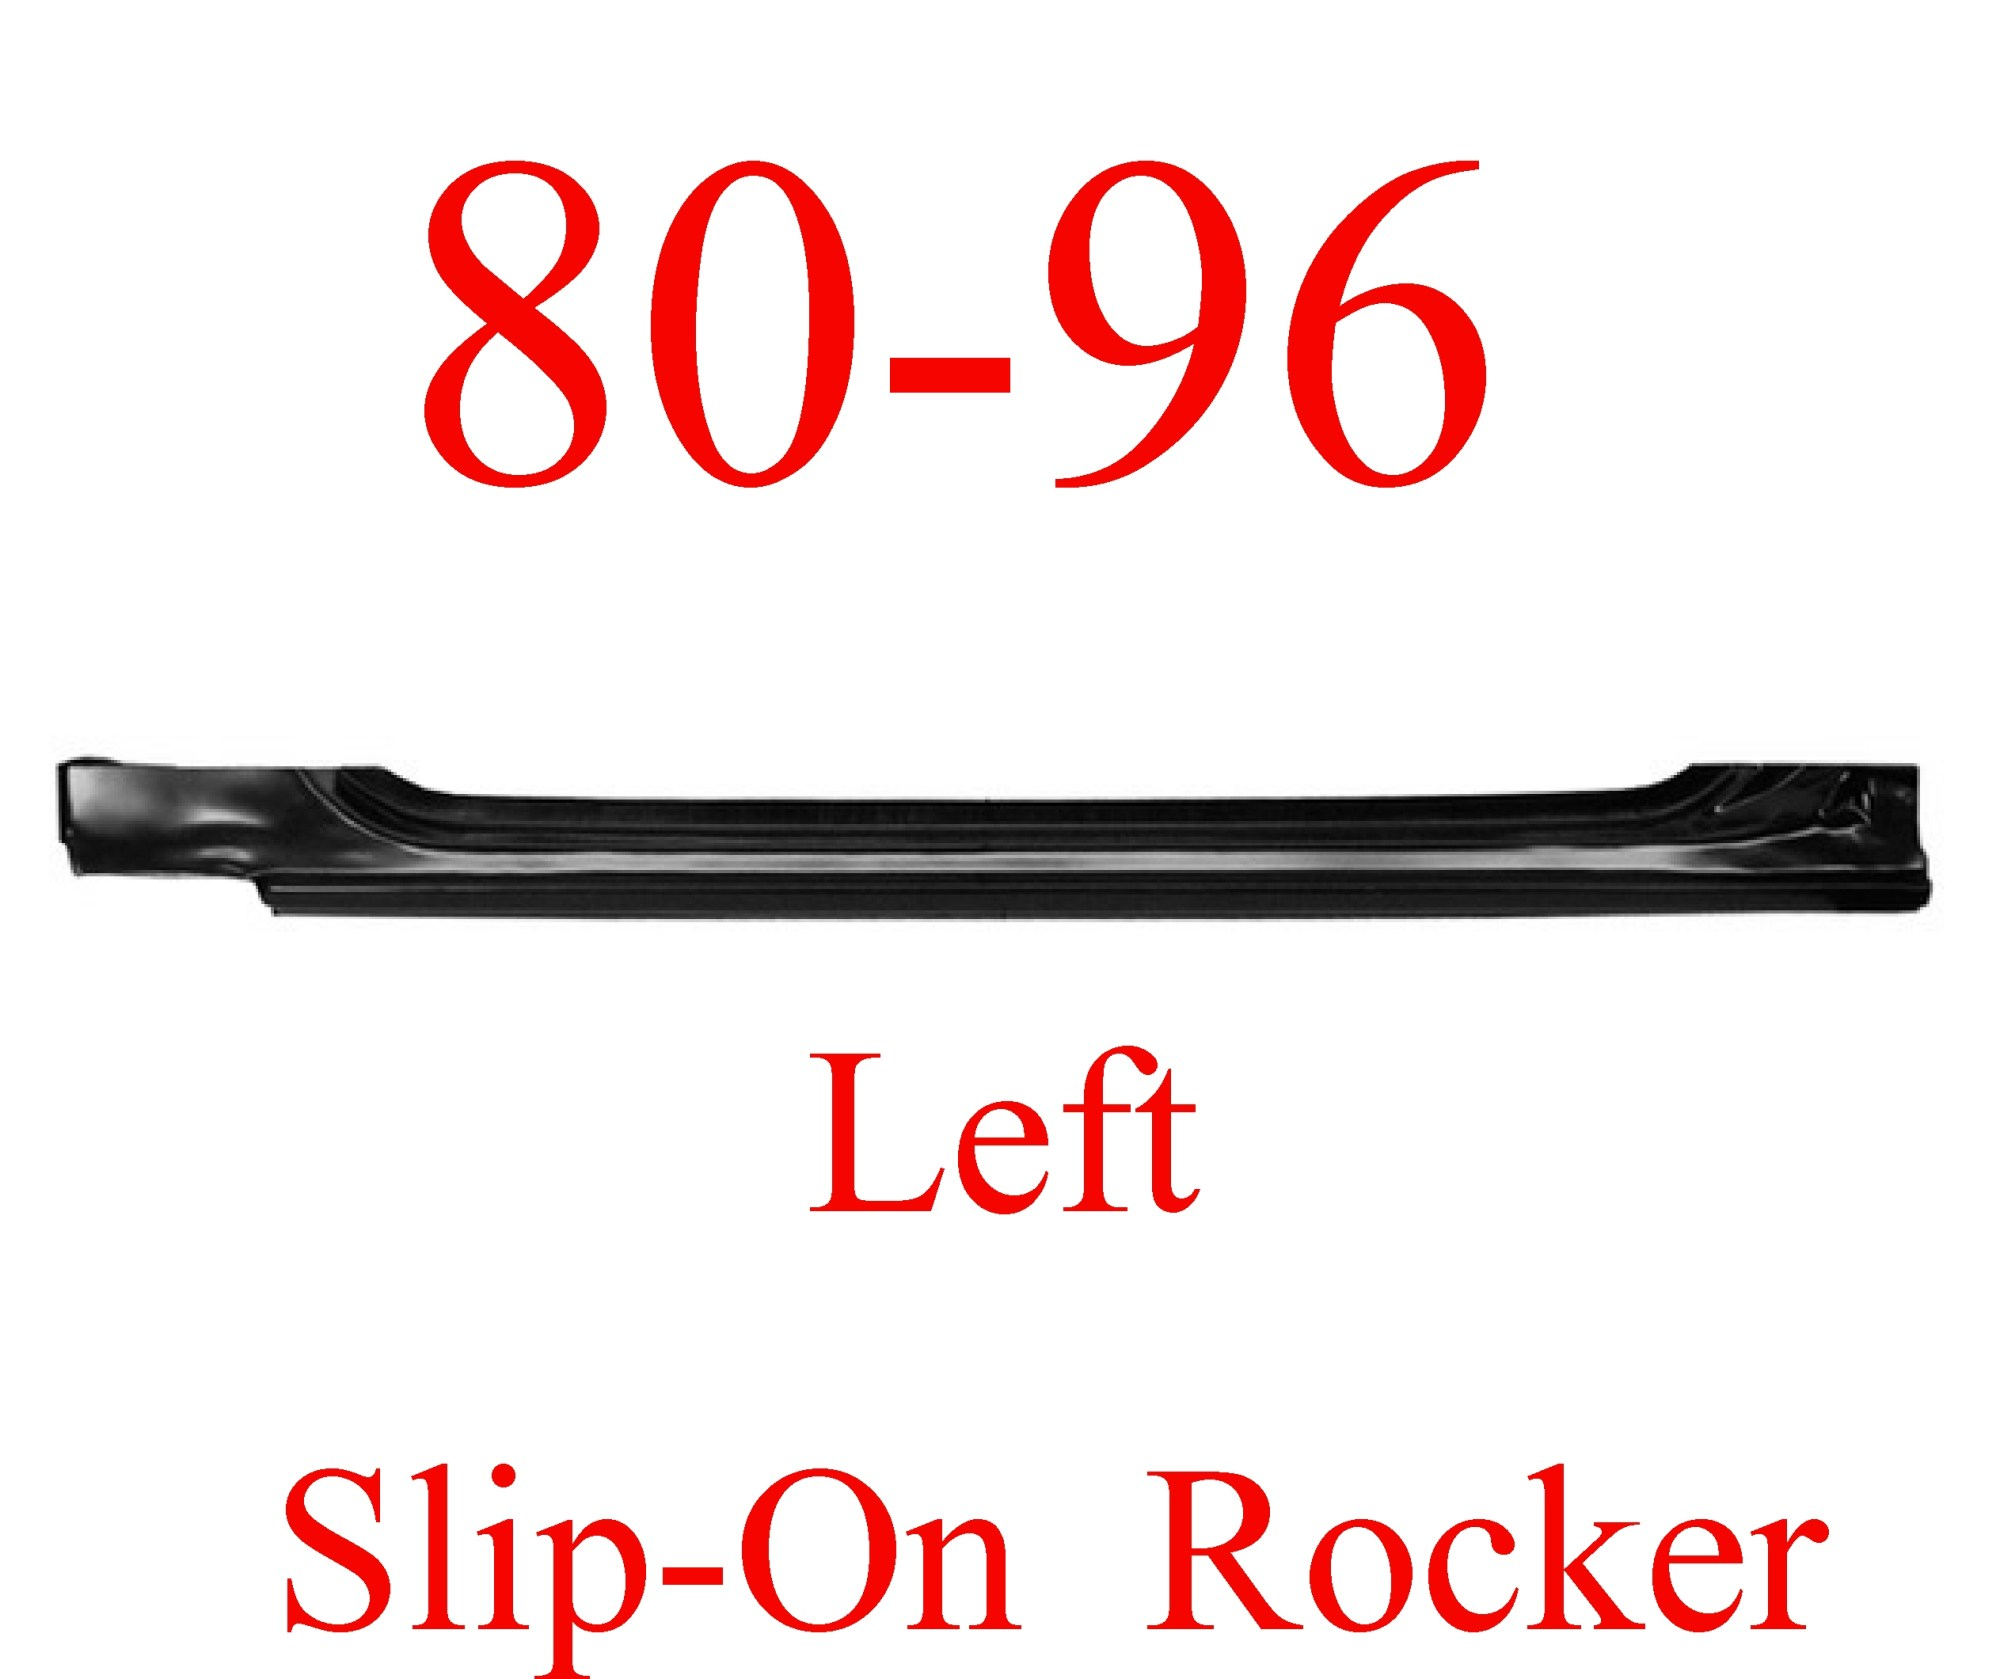 hight resolution of 80 96 left slip on rocker panel ford truck bronco